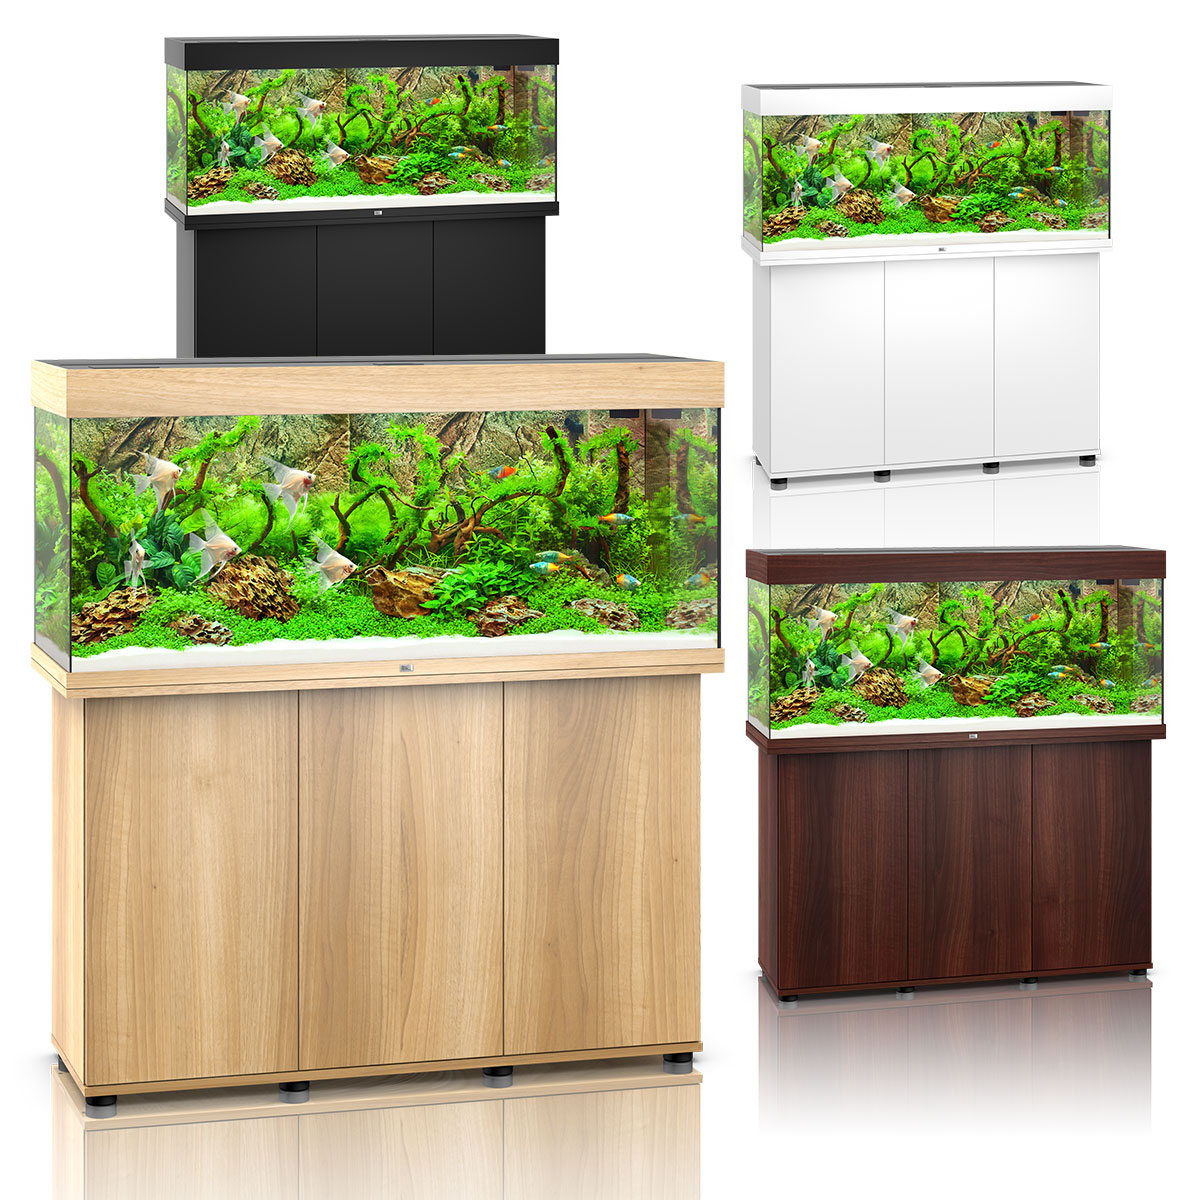 juwel rio 240 led komplett aquarium mit unterschrank sbx. Black Bedroom Furniture Sets. Home Design Ideas